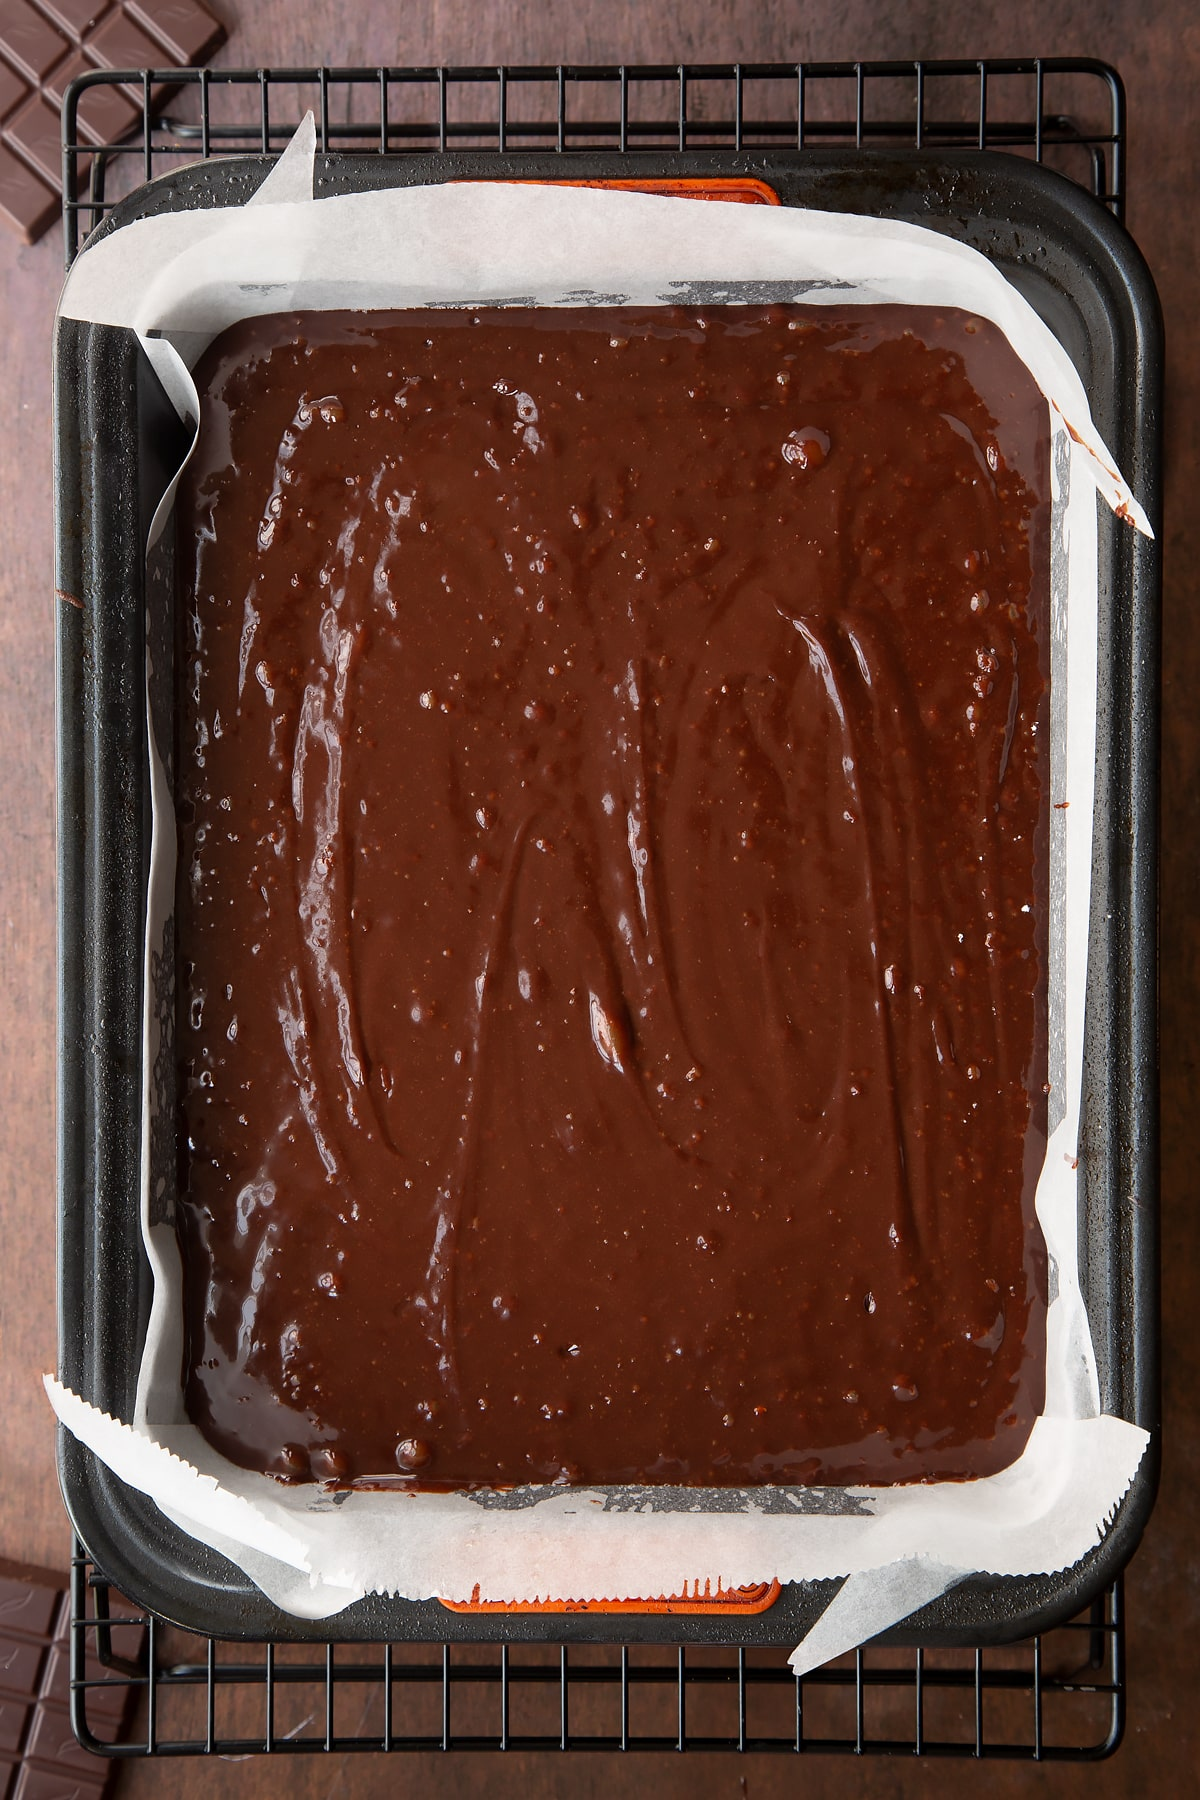 Baileys brownie batter in a lined tray.